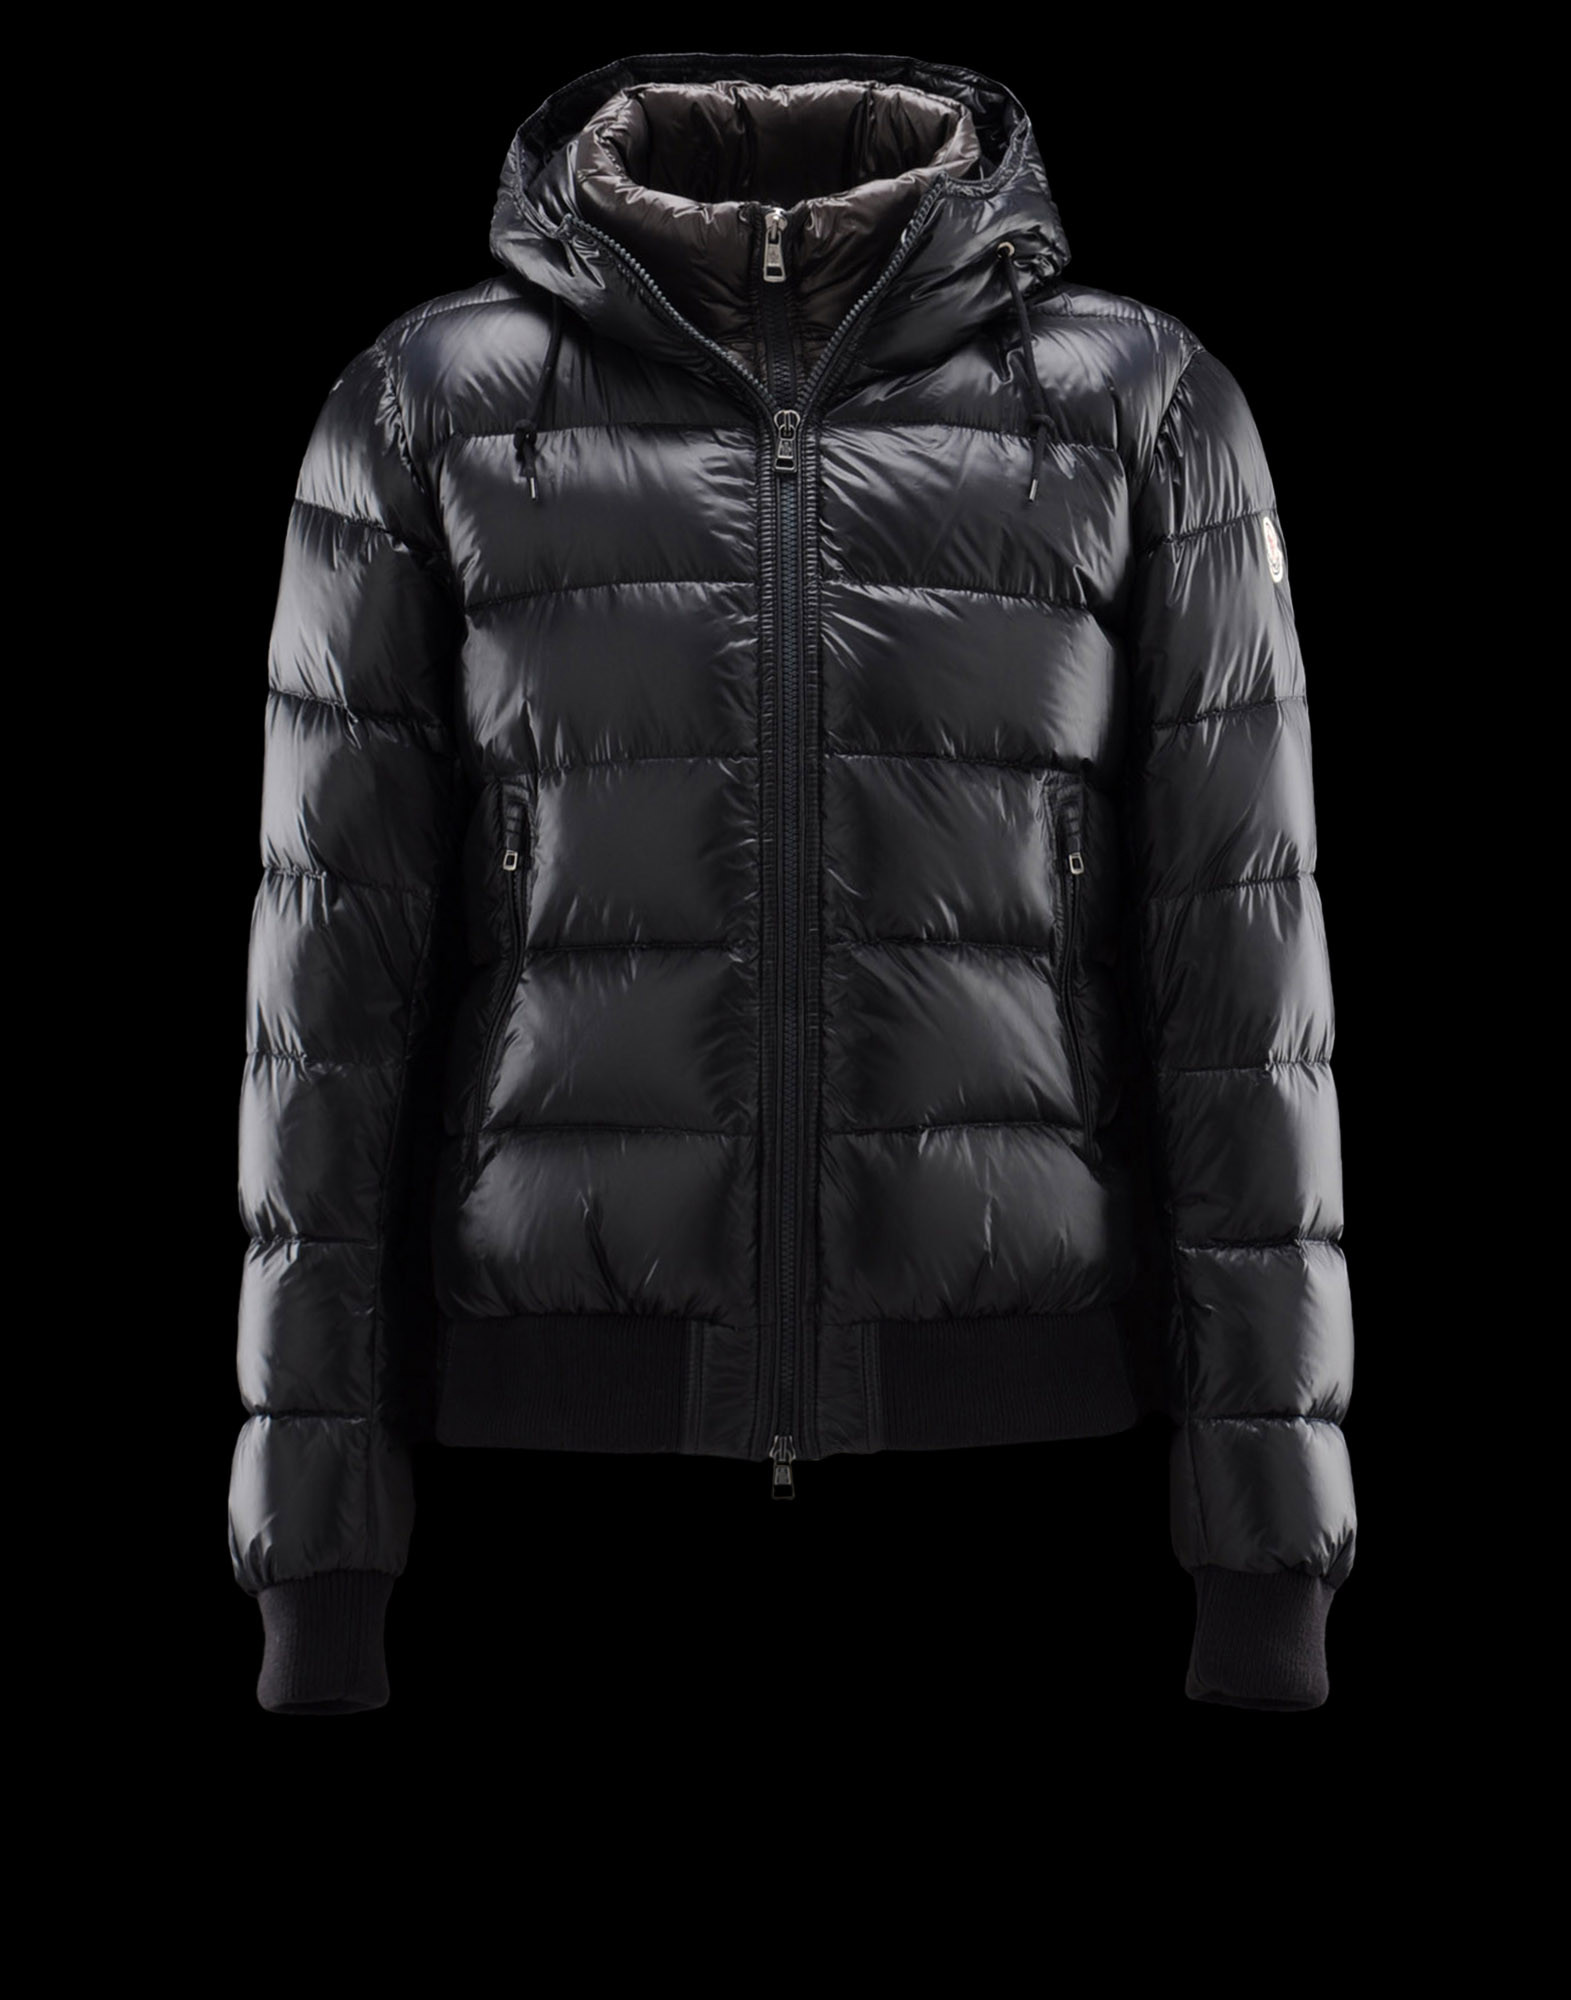 825362 Moncler Outlet Orlando Moncler Store Moncler Jacket For Women  - Denmark